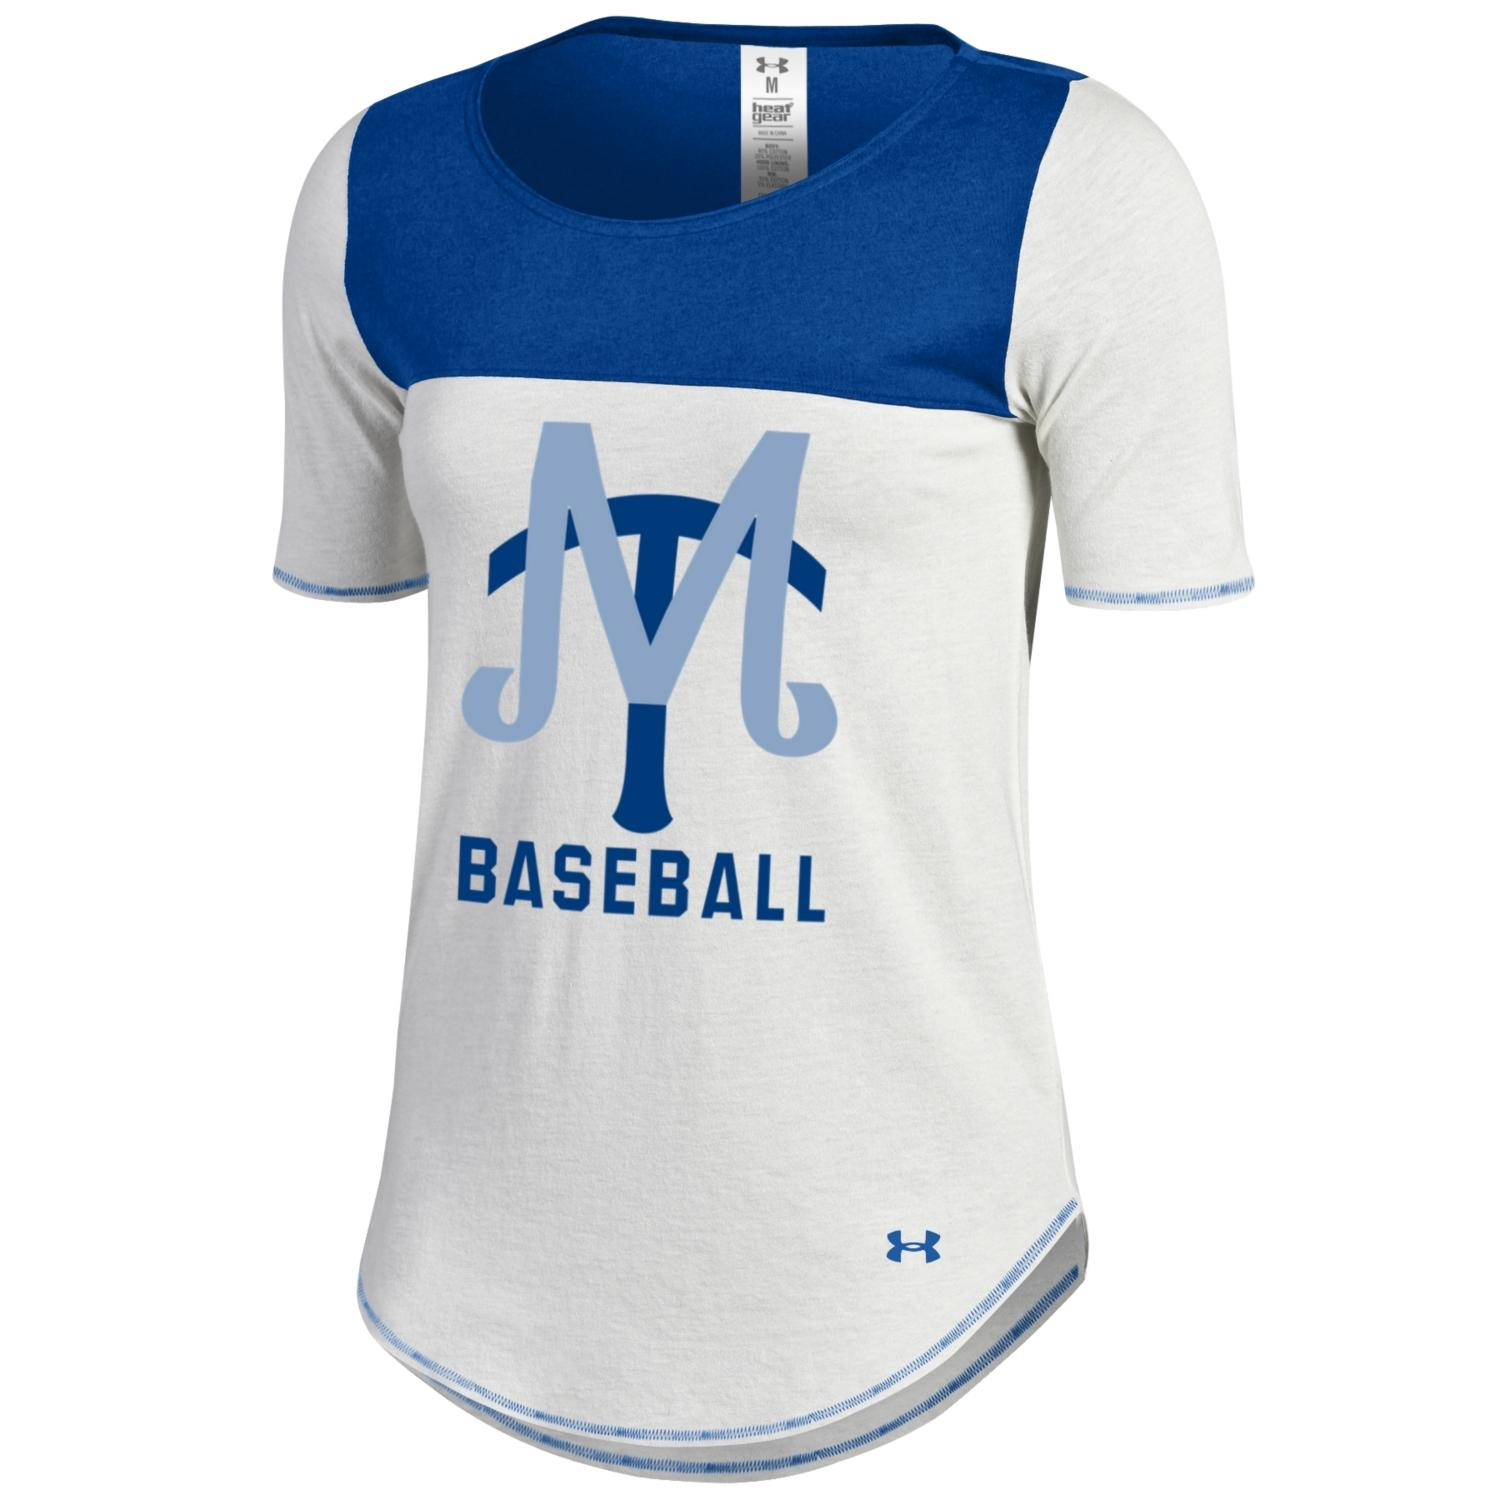 MT Baseball Women's Colorblock Shirzee